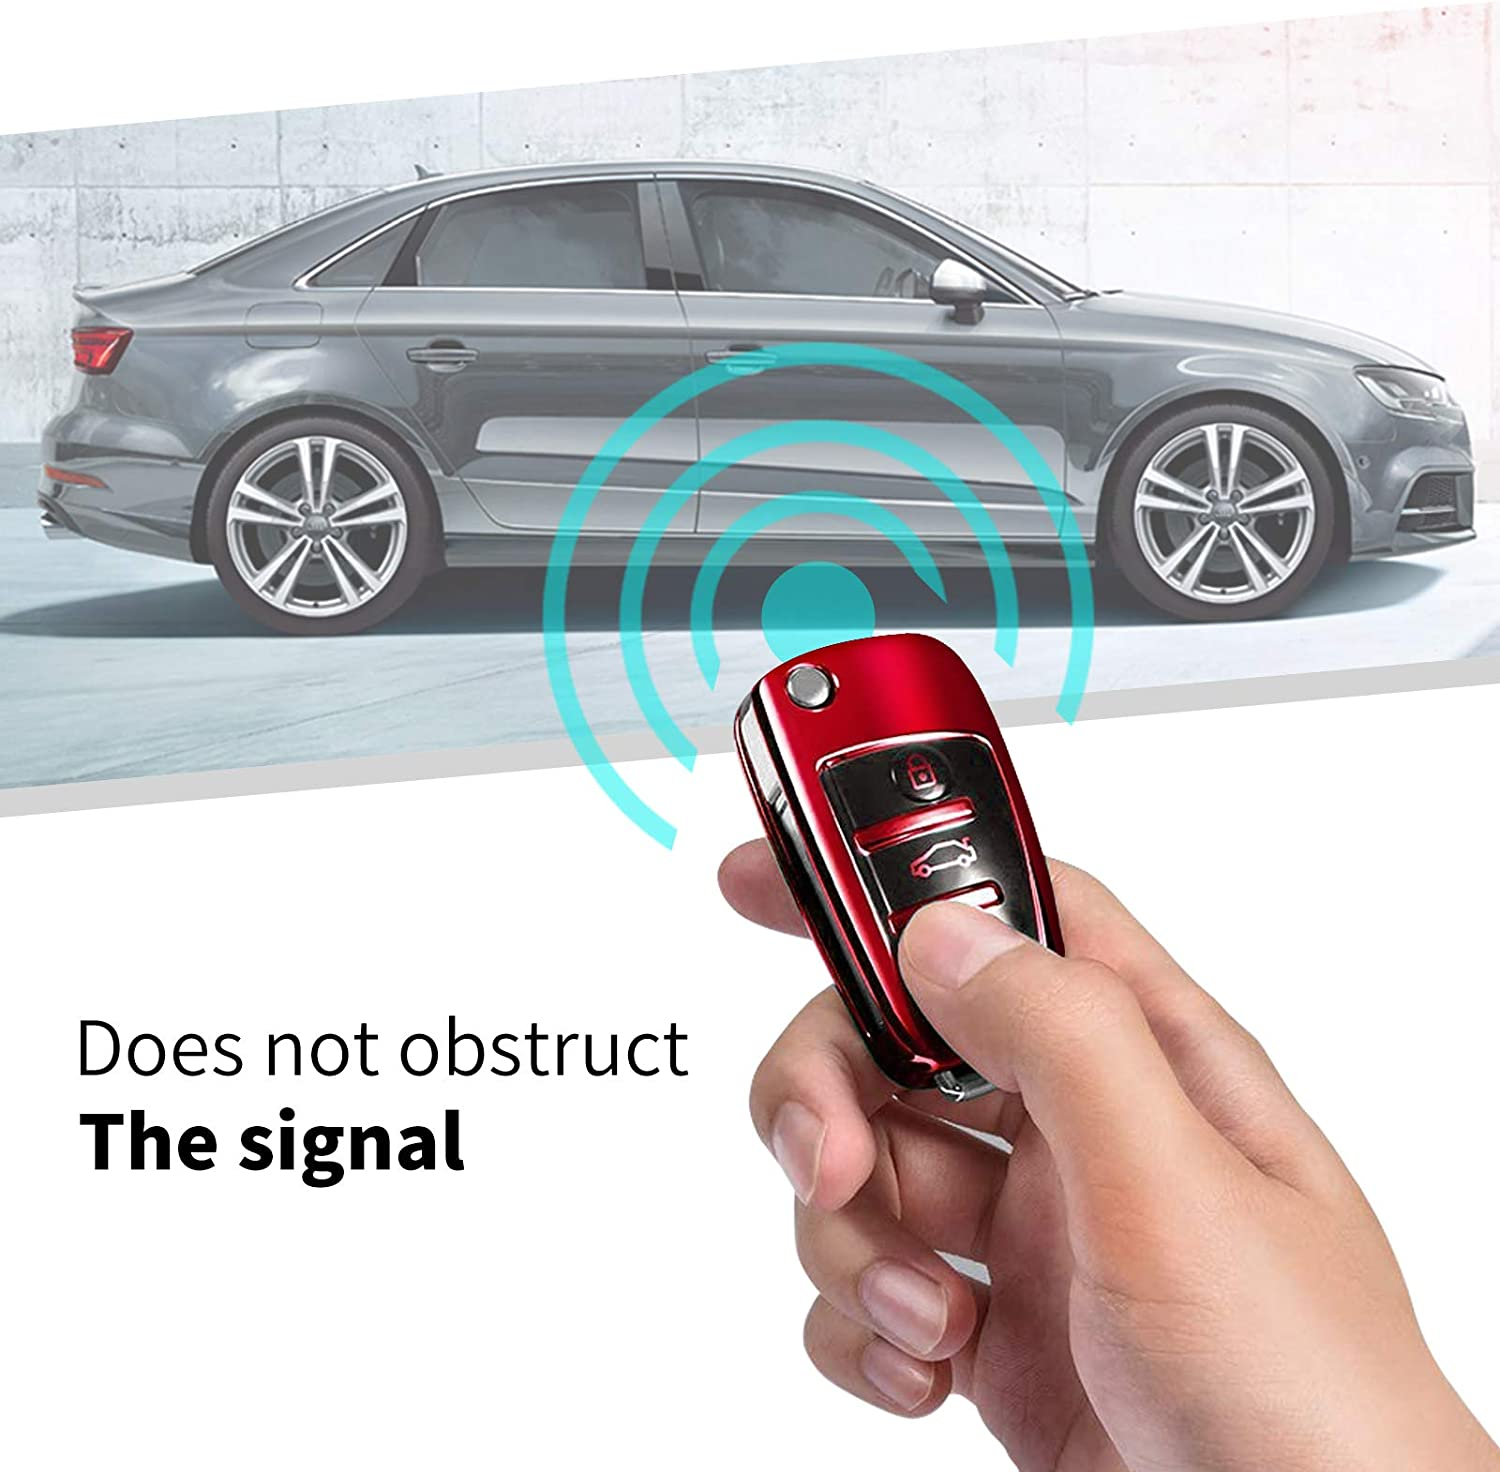 Premium Soft TPU 360 Degree Full Protection Shell Case Compatible with 2018 2019 2020 Audi A3 Q3 Q2L A1 S3 Audi Key Fob Cover Case Black